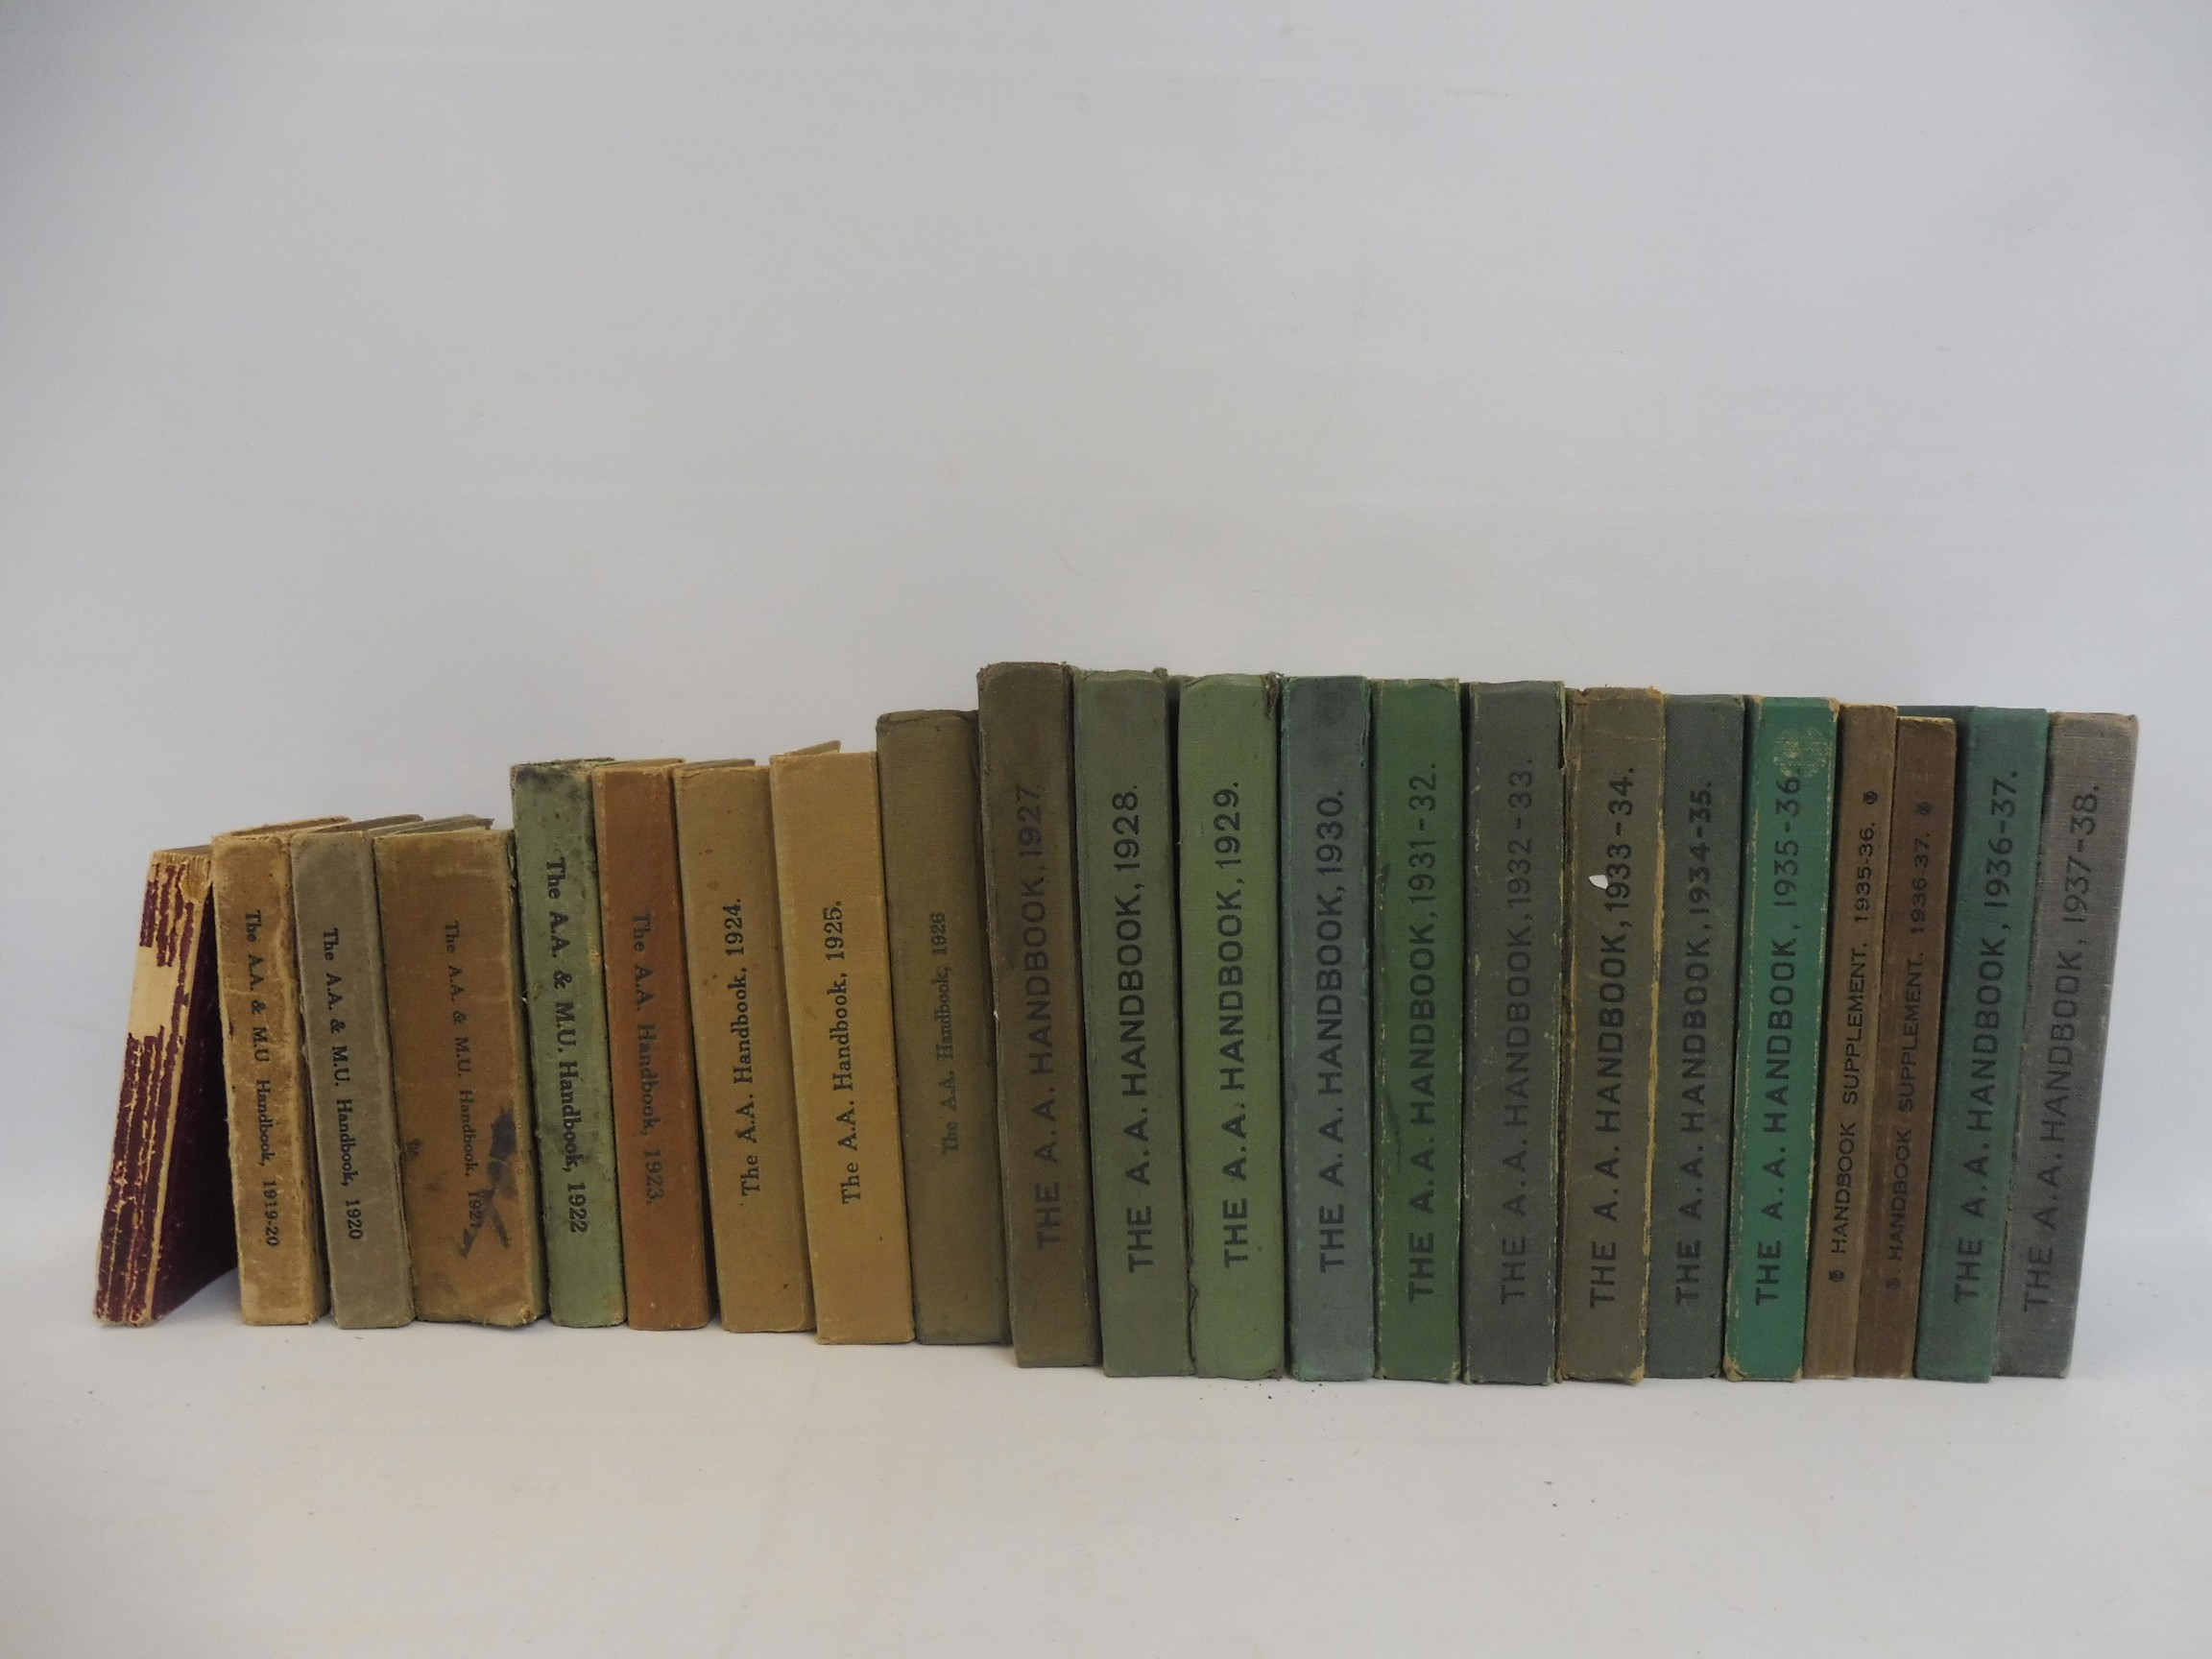 The AA and Motor Union Handbook, issues 1913, 1919-1920, 1920, 1921, and 1922, plus The AA